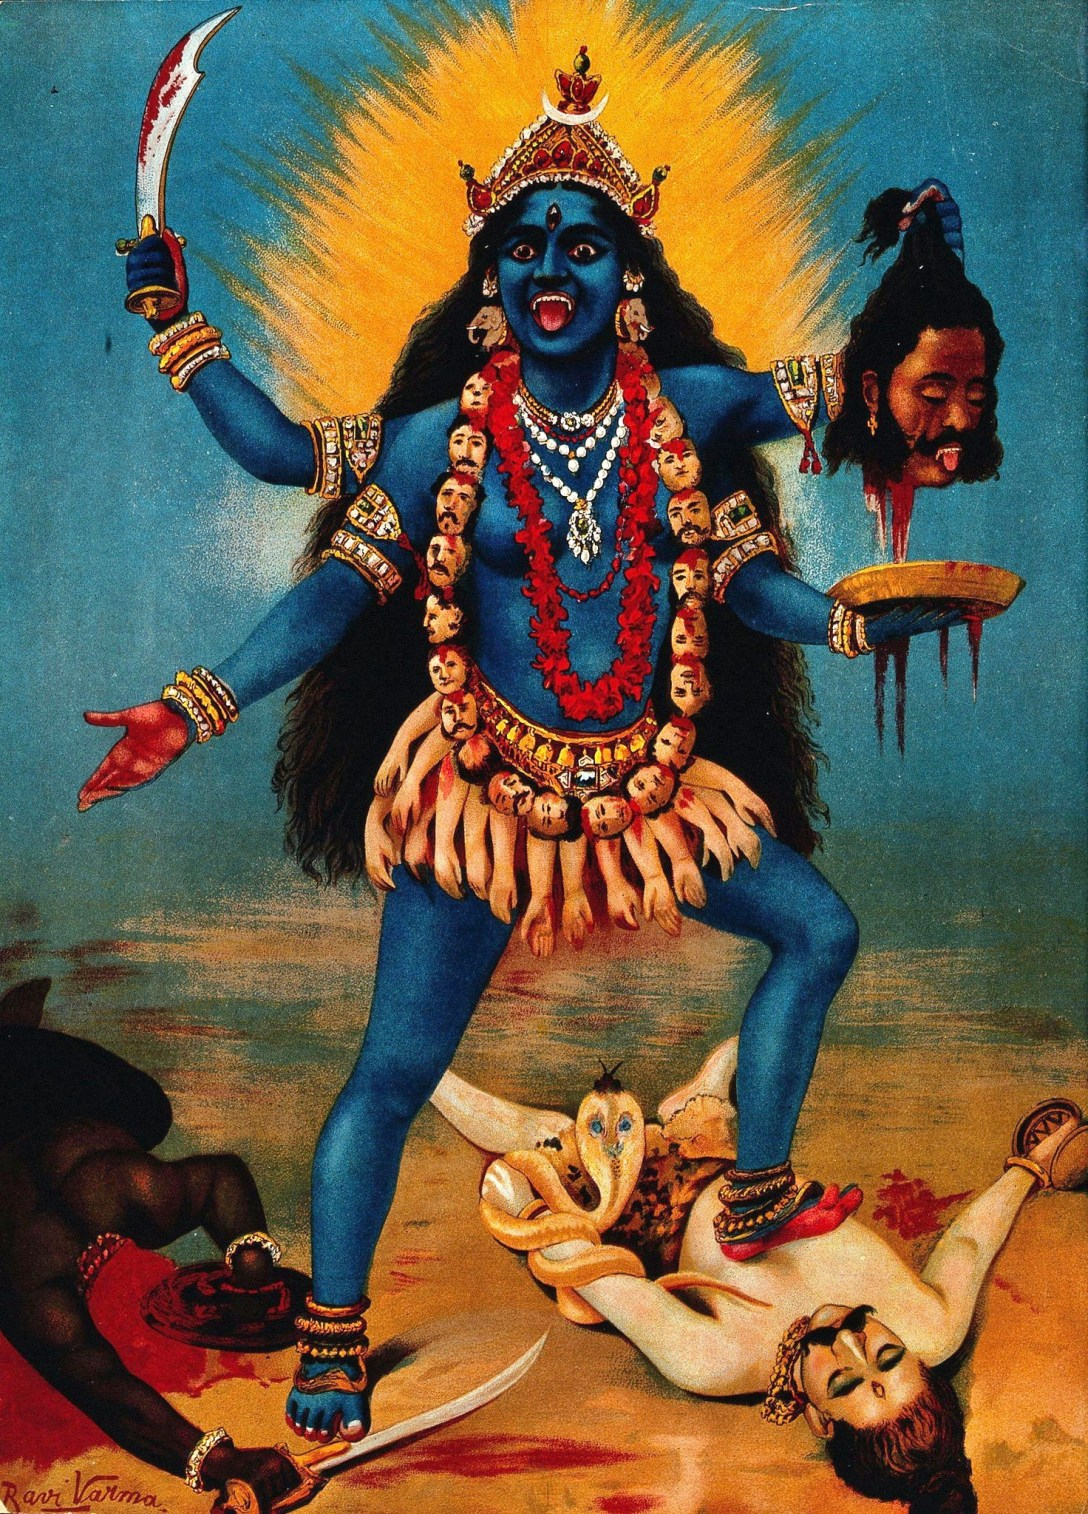 KALI - THE WORLD IS PETRIFIED OF STRONG FEMALES